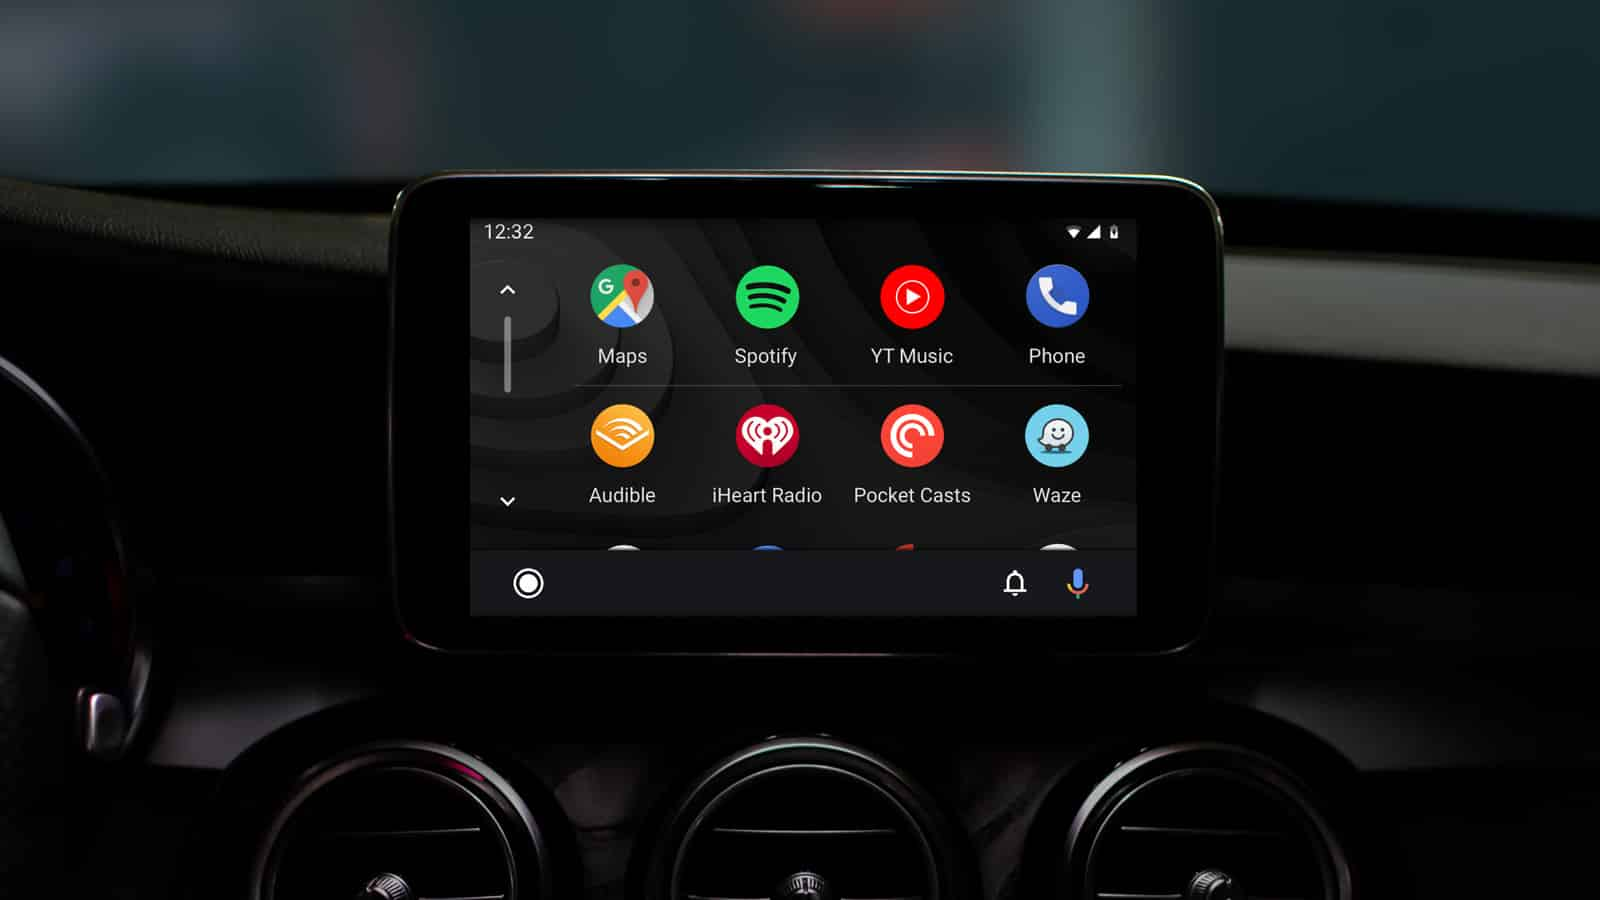 Android Auto Gets An Updated Look - Here Is What It Looks Like